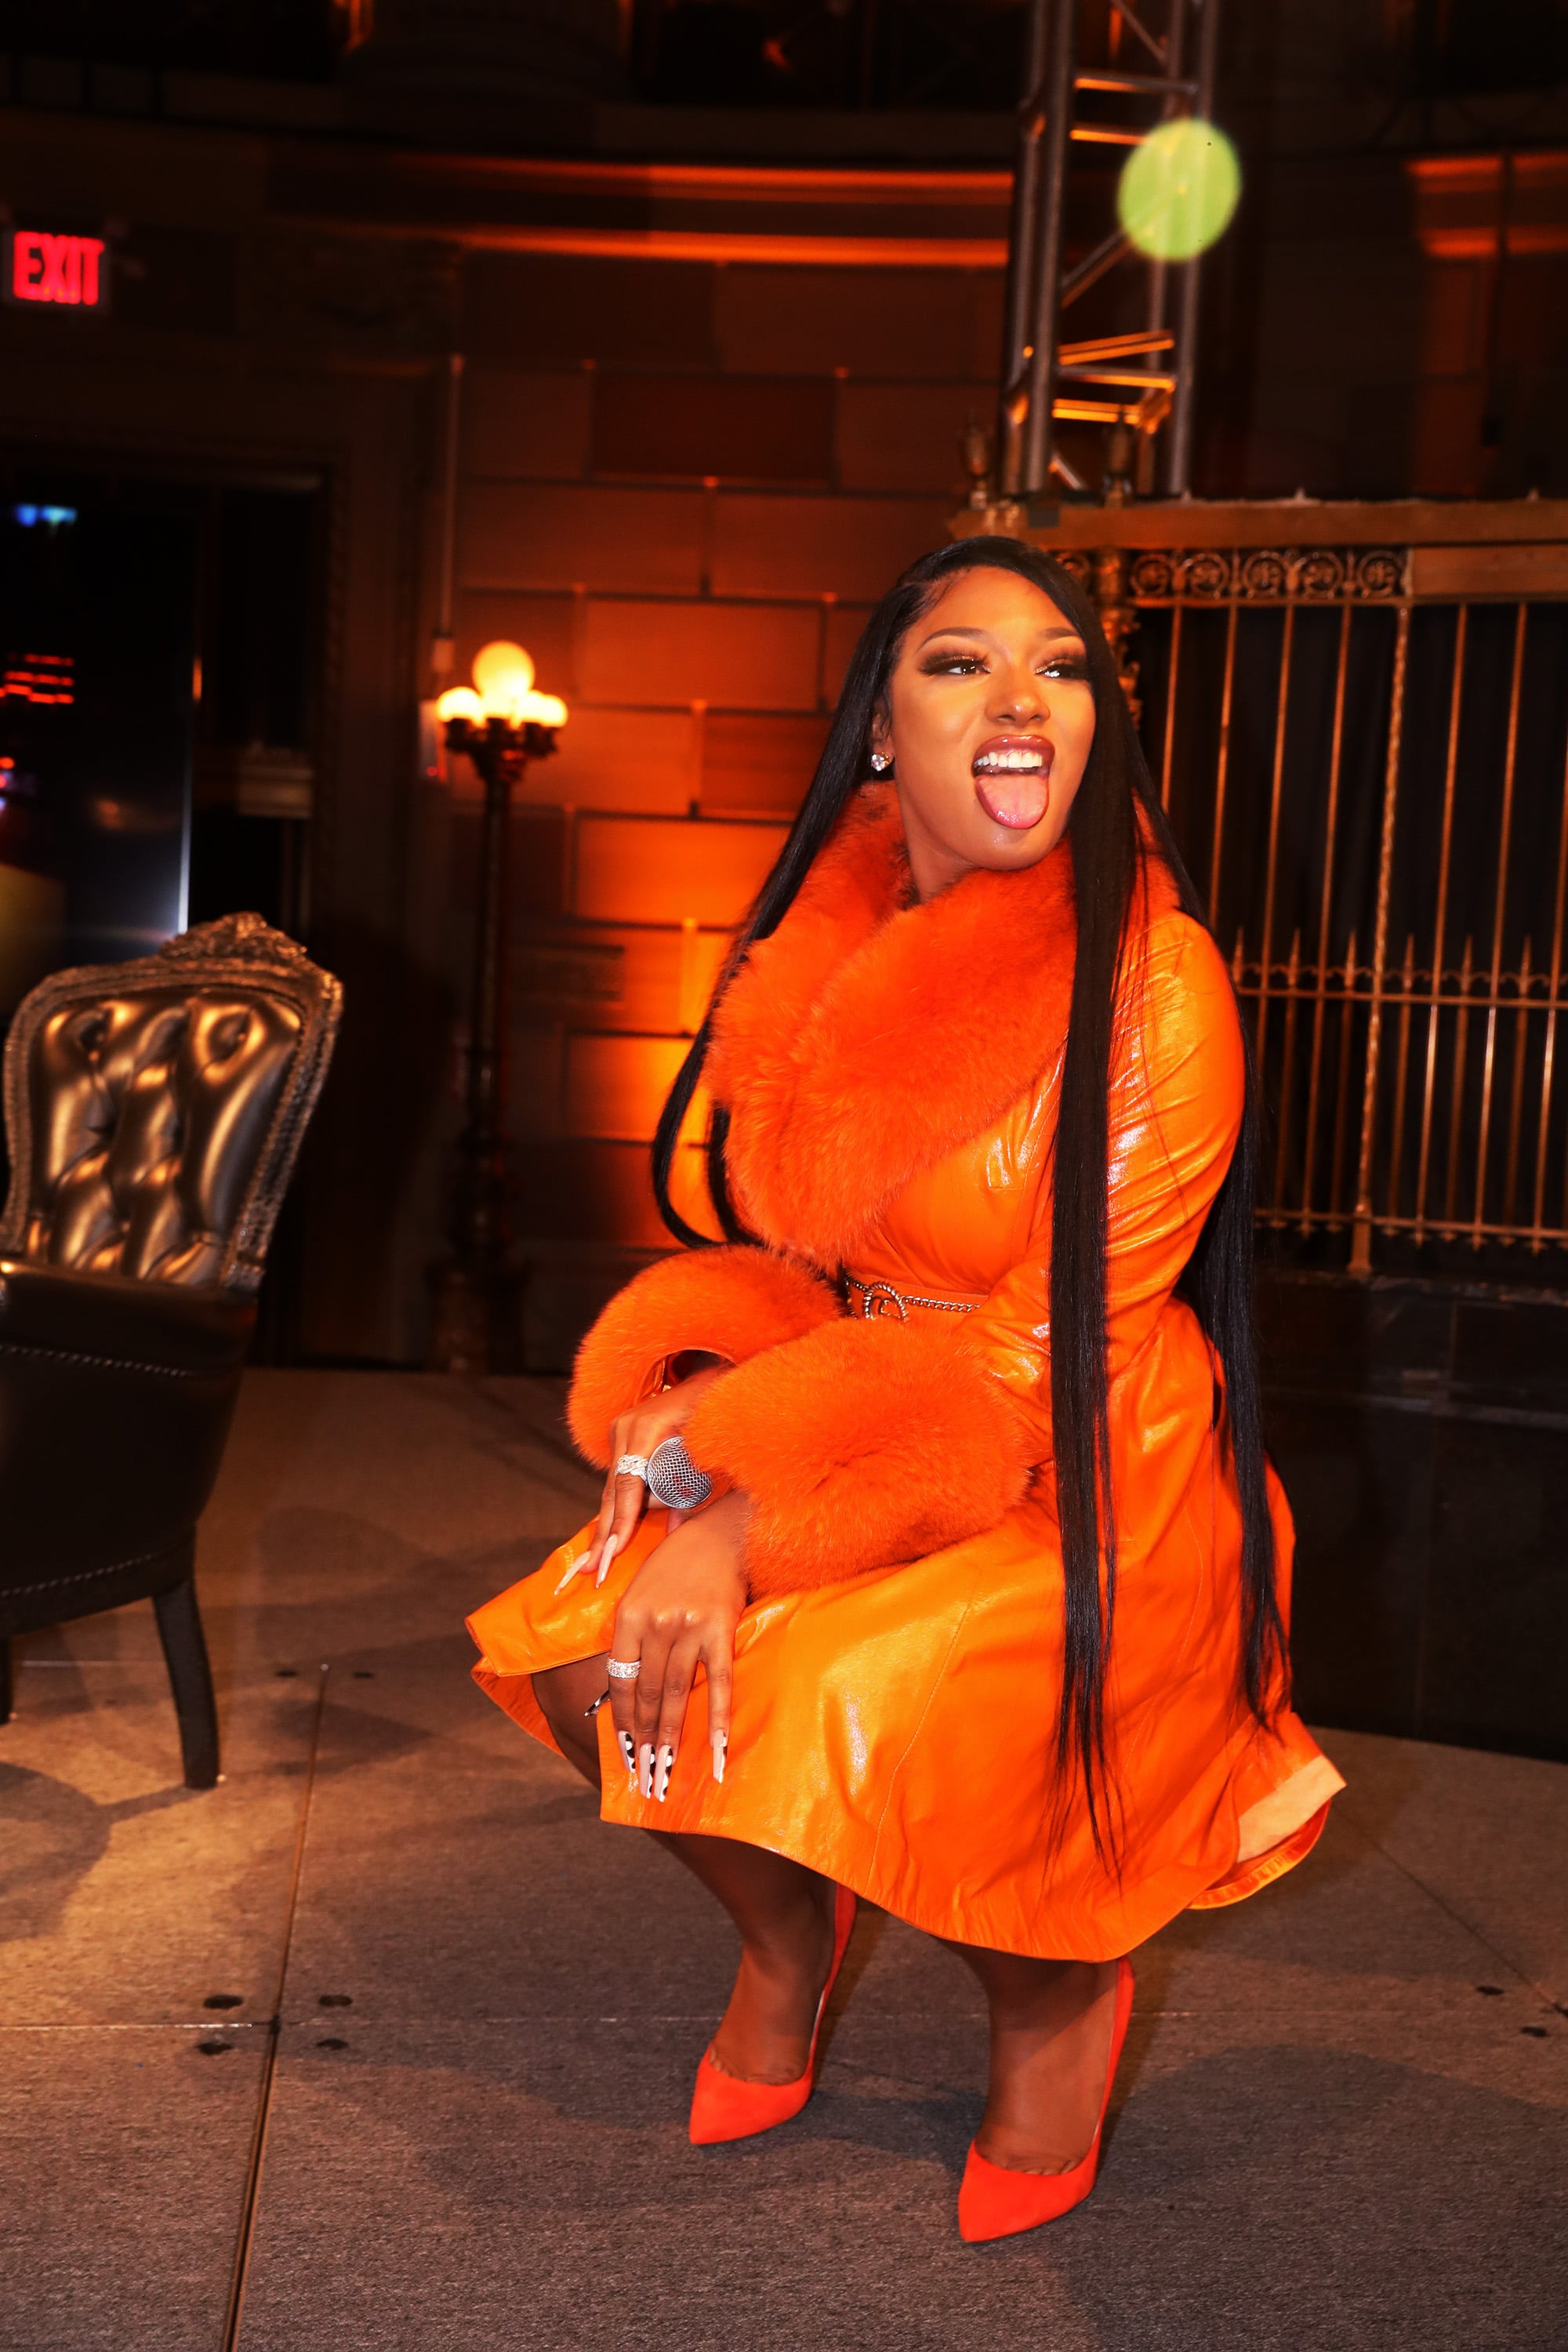 NEW YORK, NEW YORK - MARCH 10: Recording artist Megan Thee Stallion appears onstage at #CRWN  A Conversation With Elliott Wilson And Megan Thee Stallion at Gotham Hall on March 10, 2020 in New York City. (Photo by Johnny Nunez/WireImage)